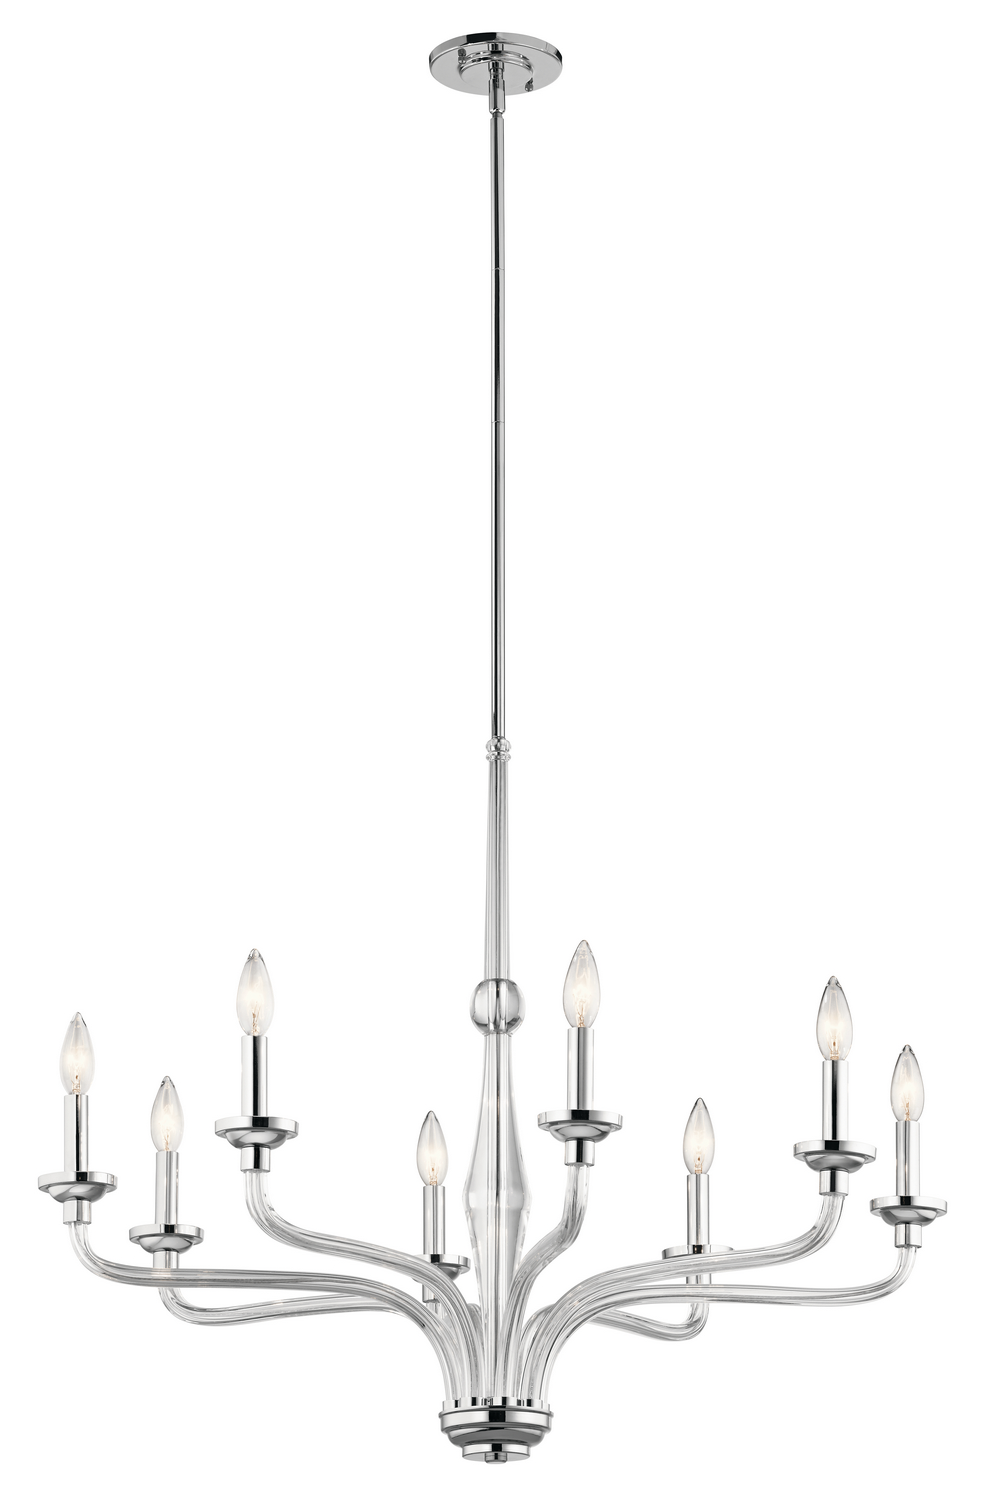 Eight Light Chandelier from the Loula collection by Kichler 43809CH